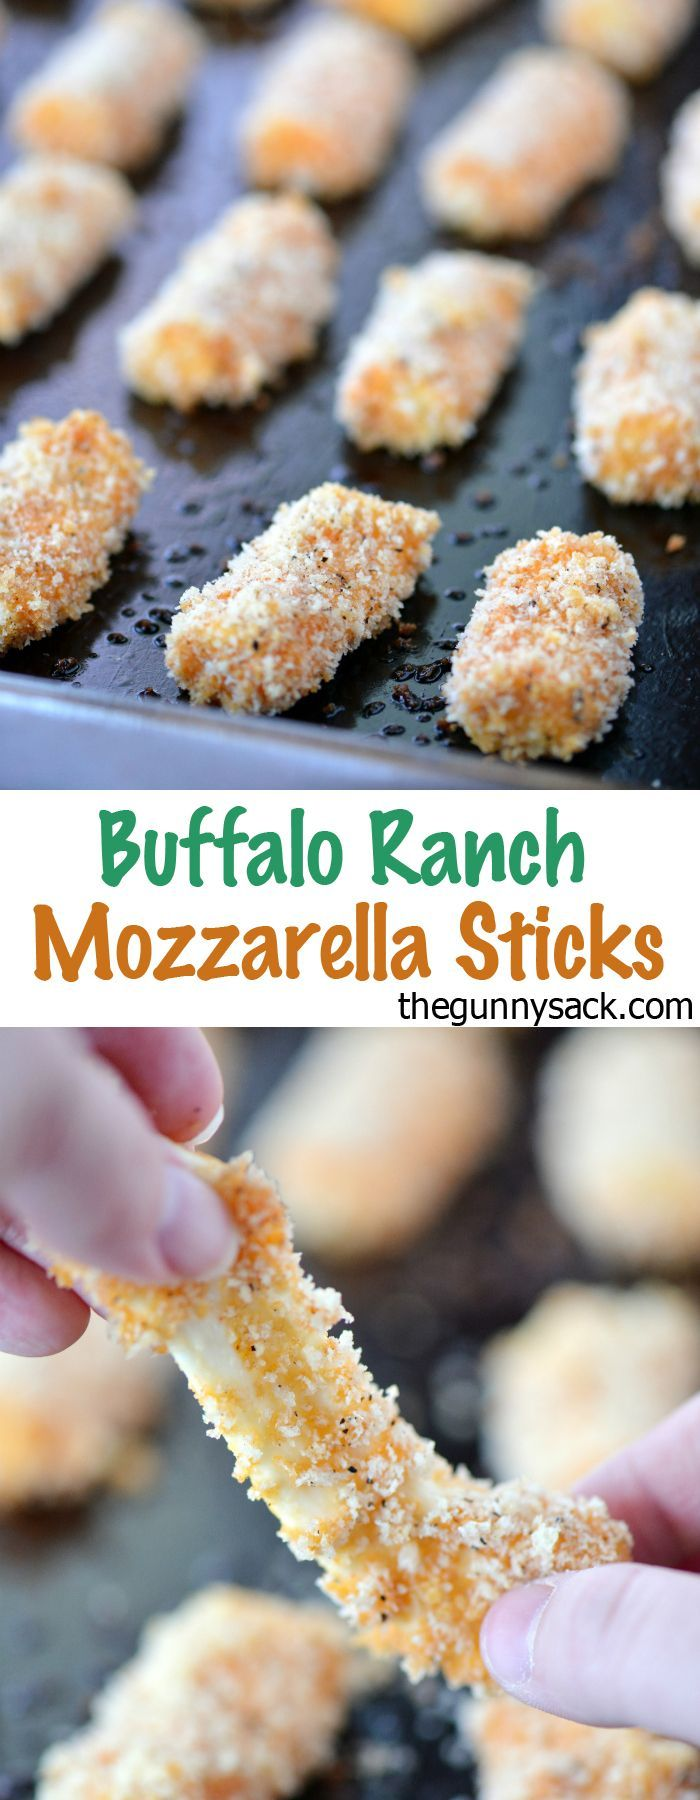 how to make homemade mozzarella sticks with string cheese